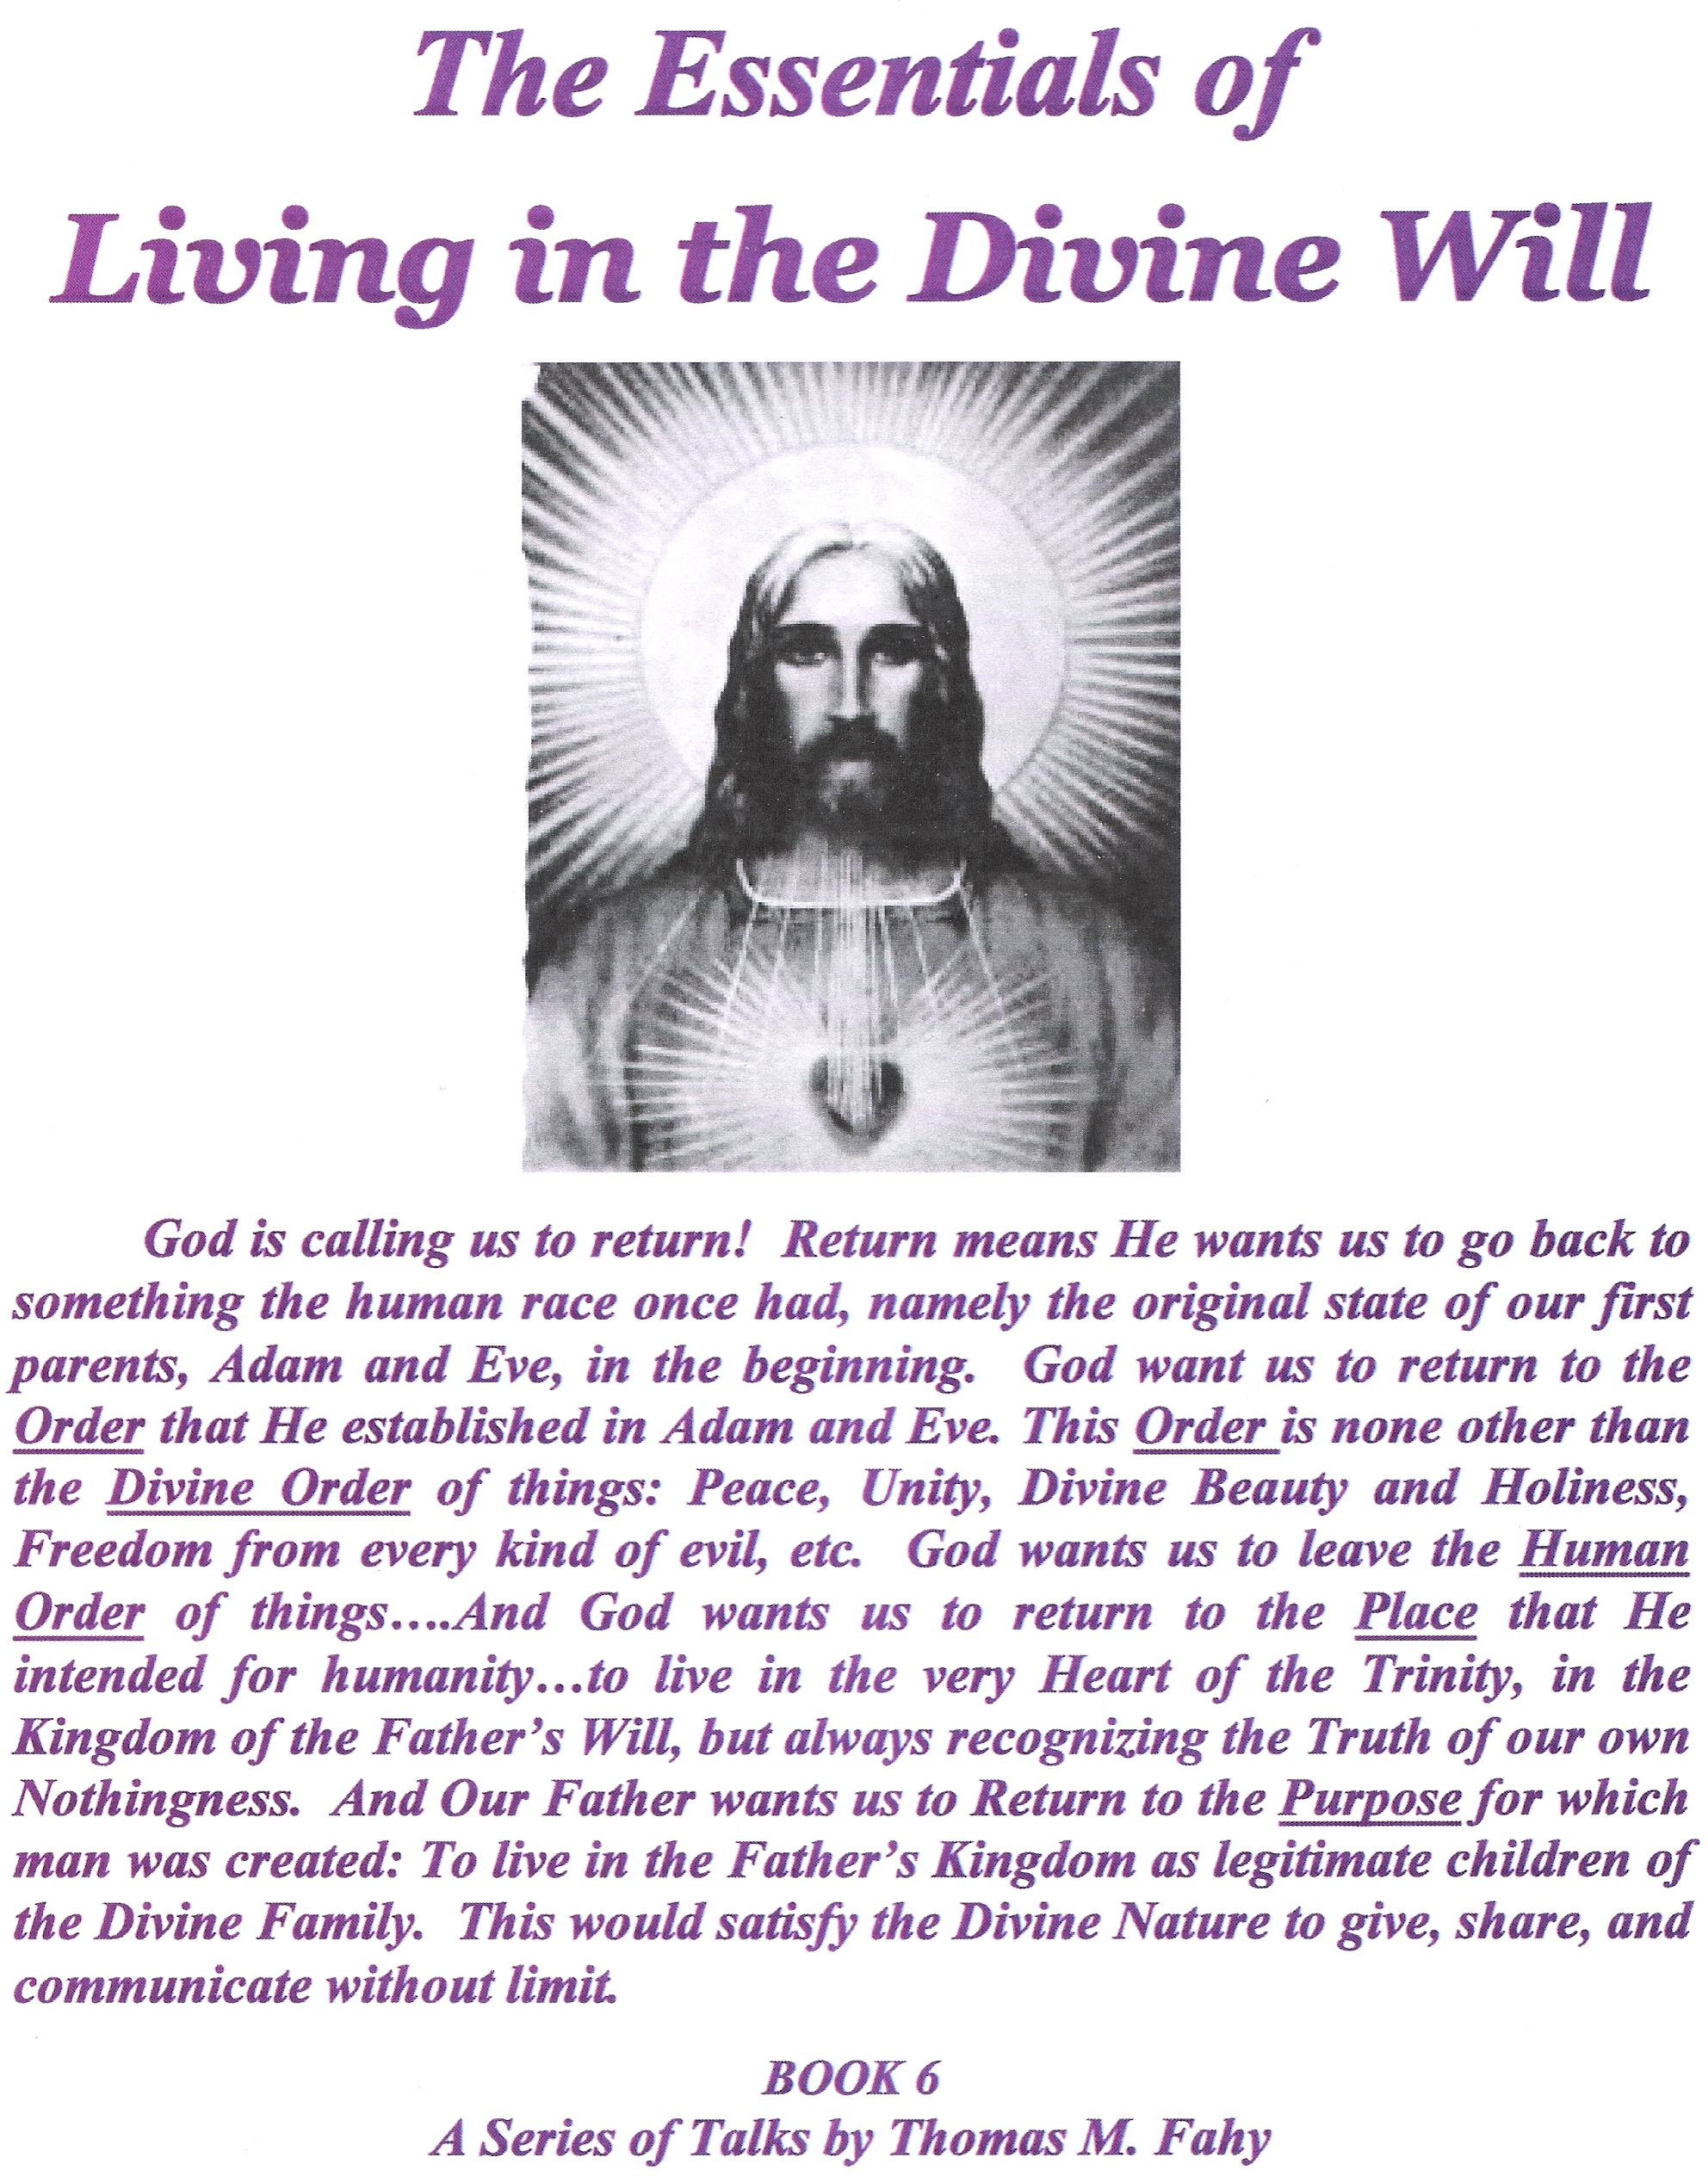 The Essentials of Living in Divine Will